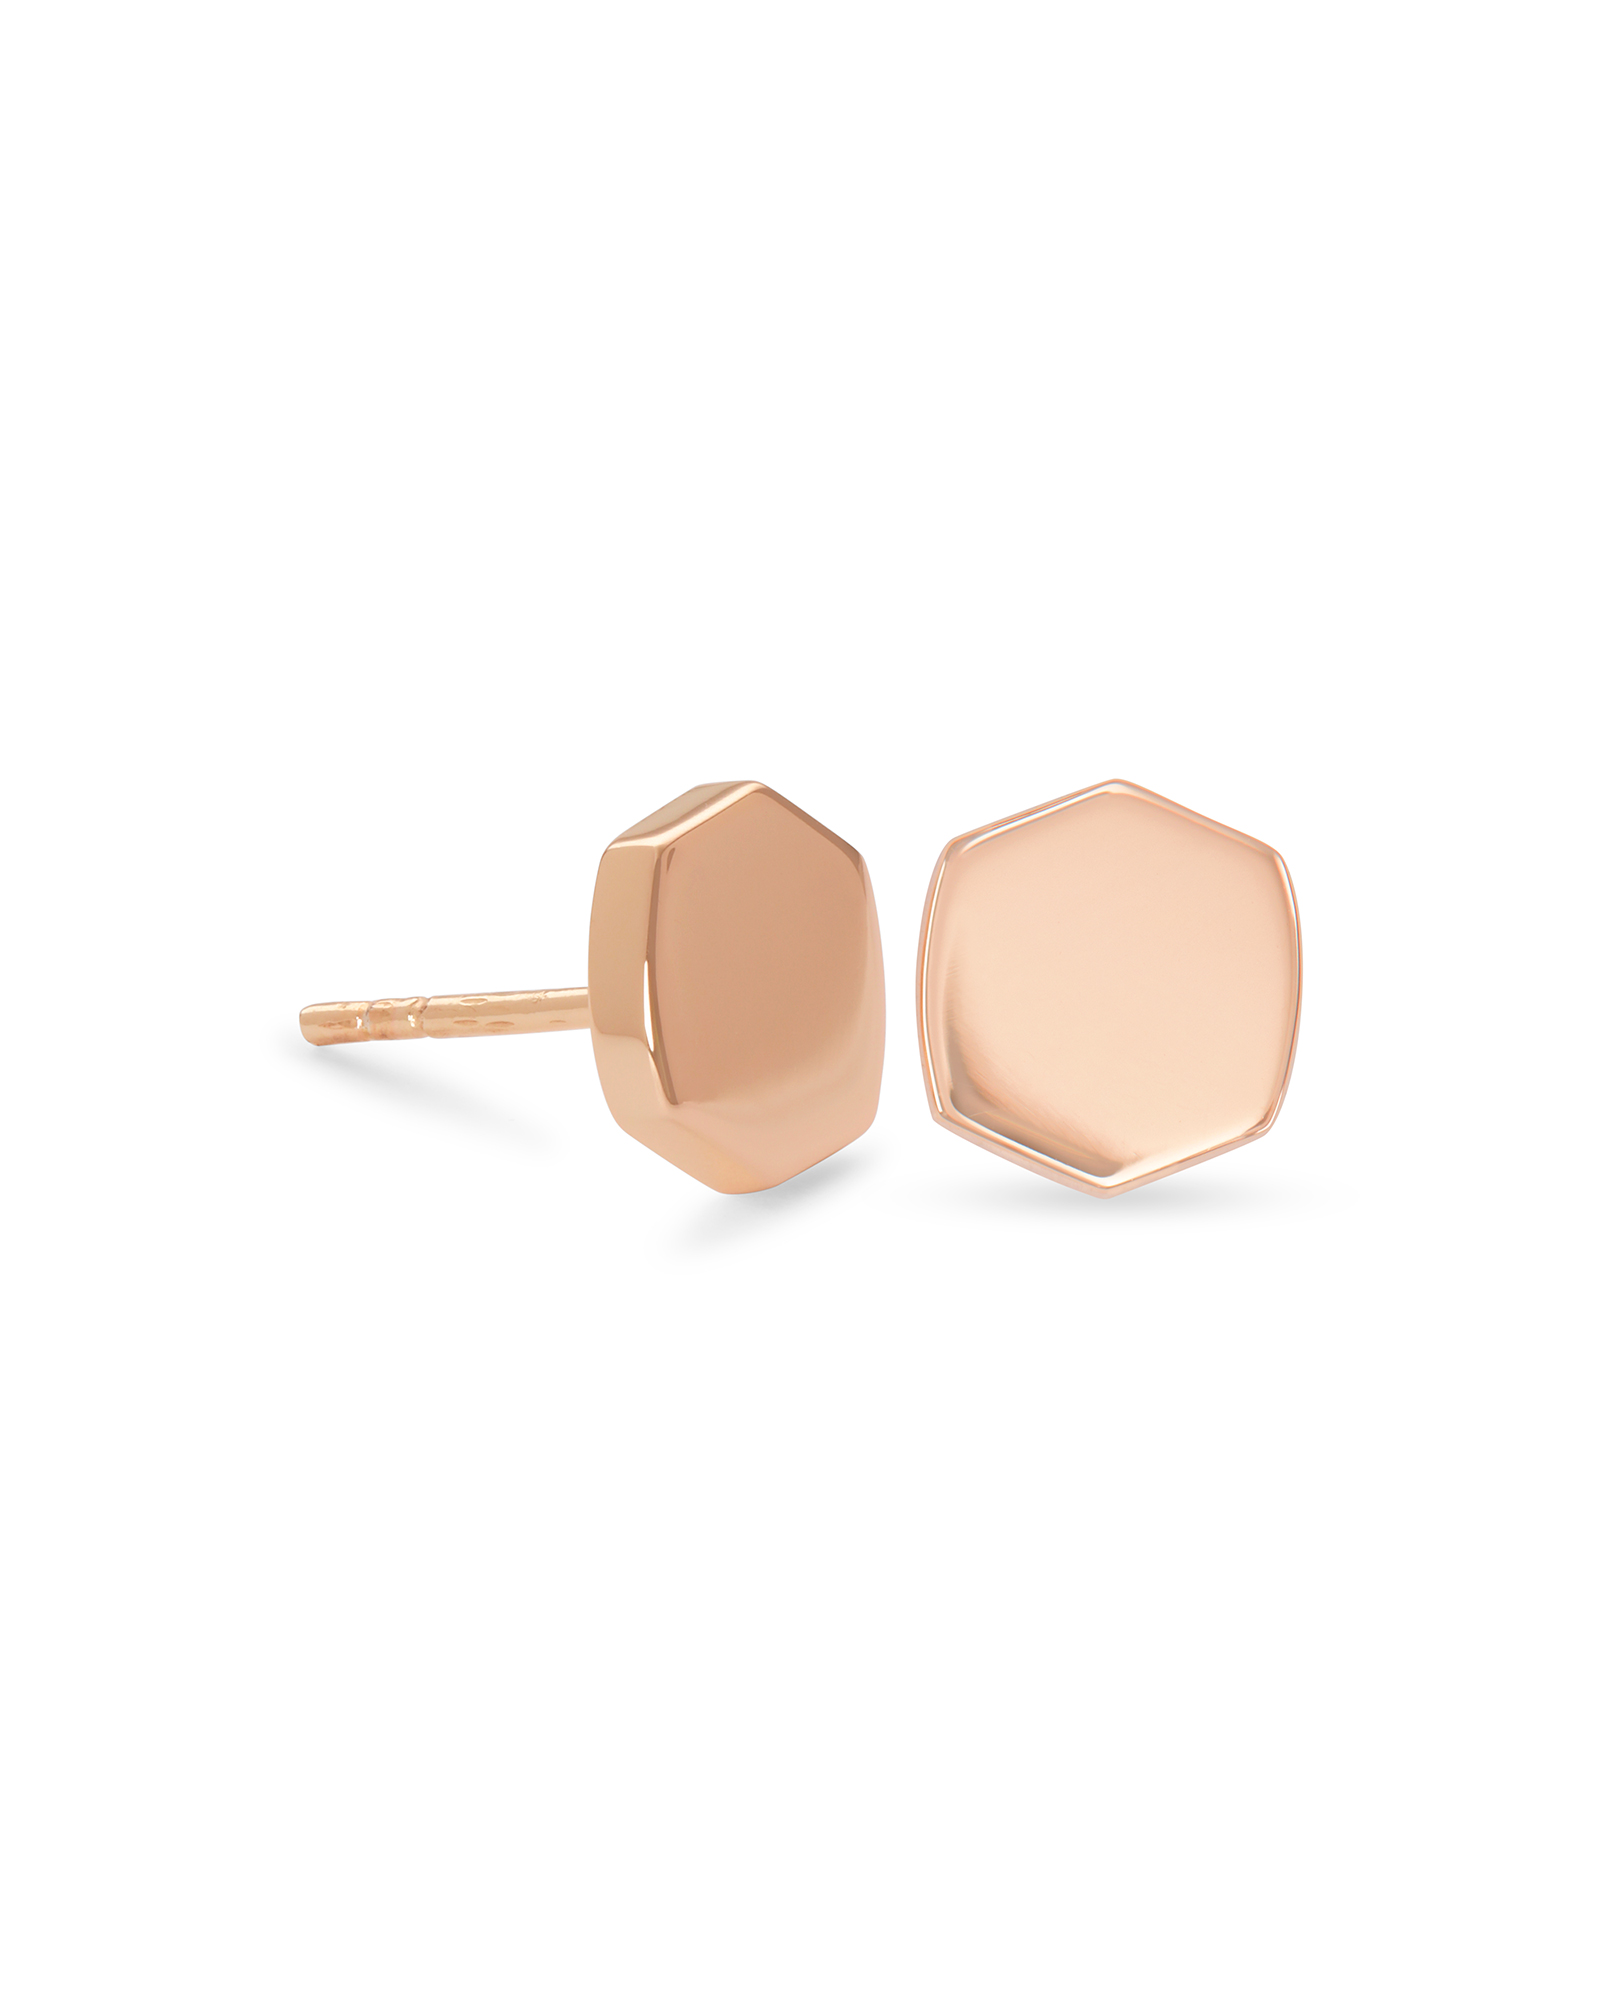 Davis Stud Earrings in 18k Rose Gold Vermeil